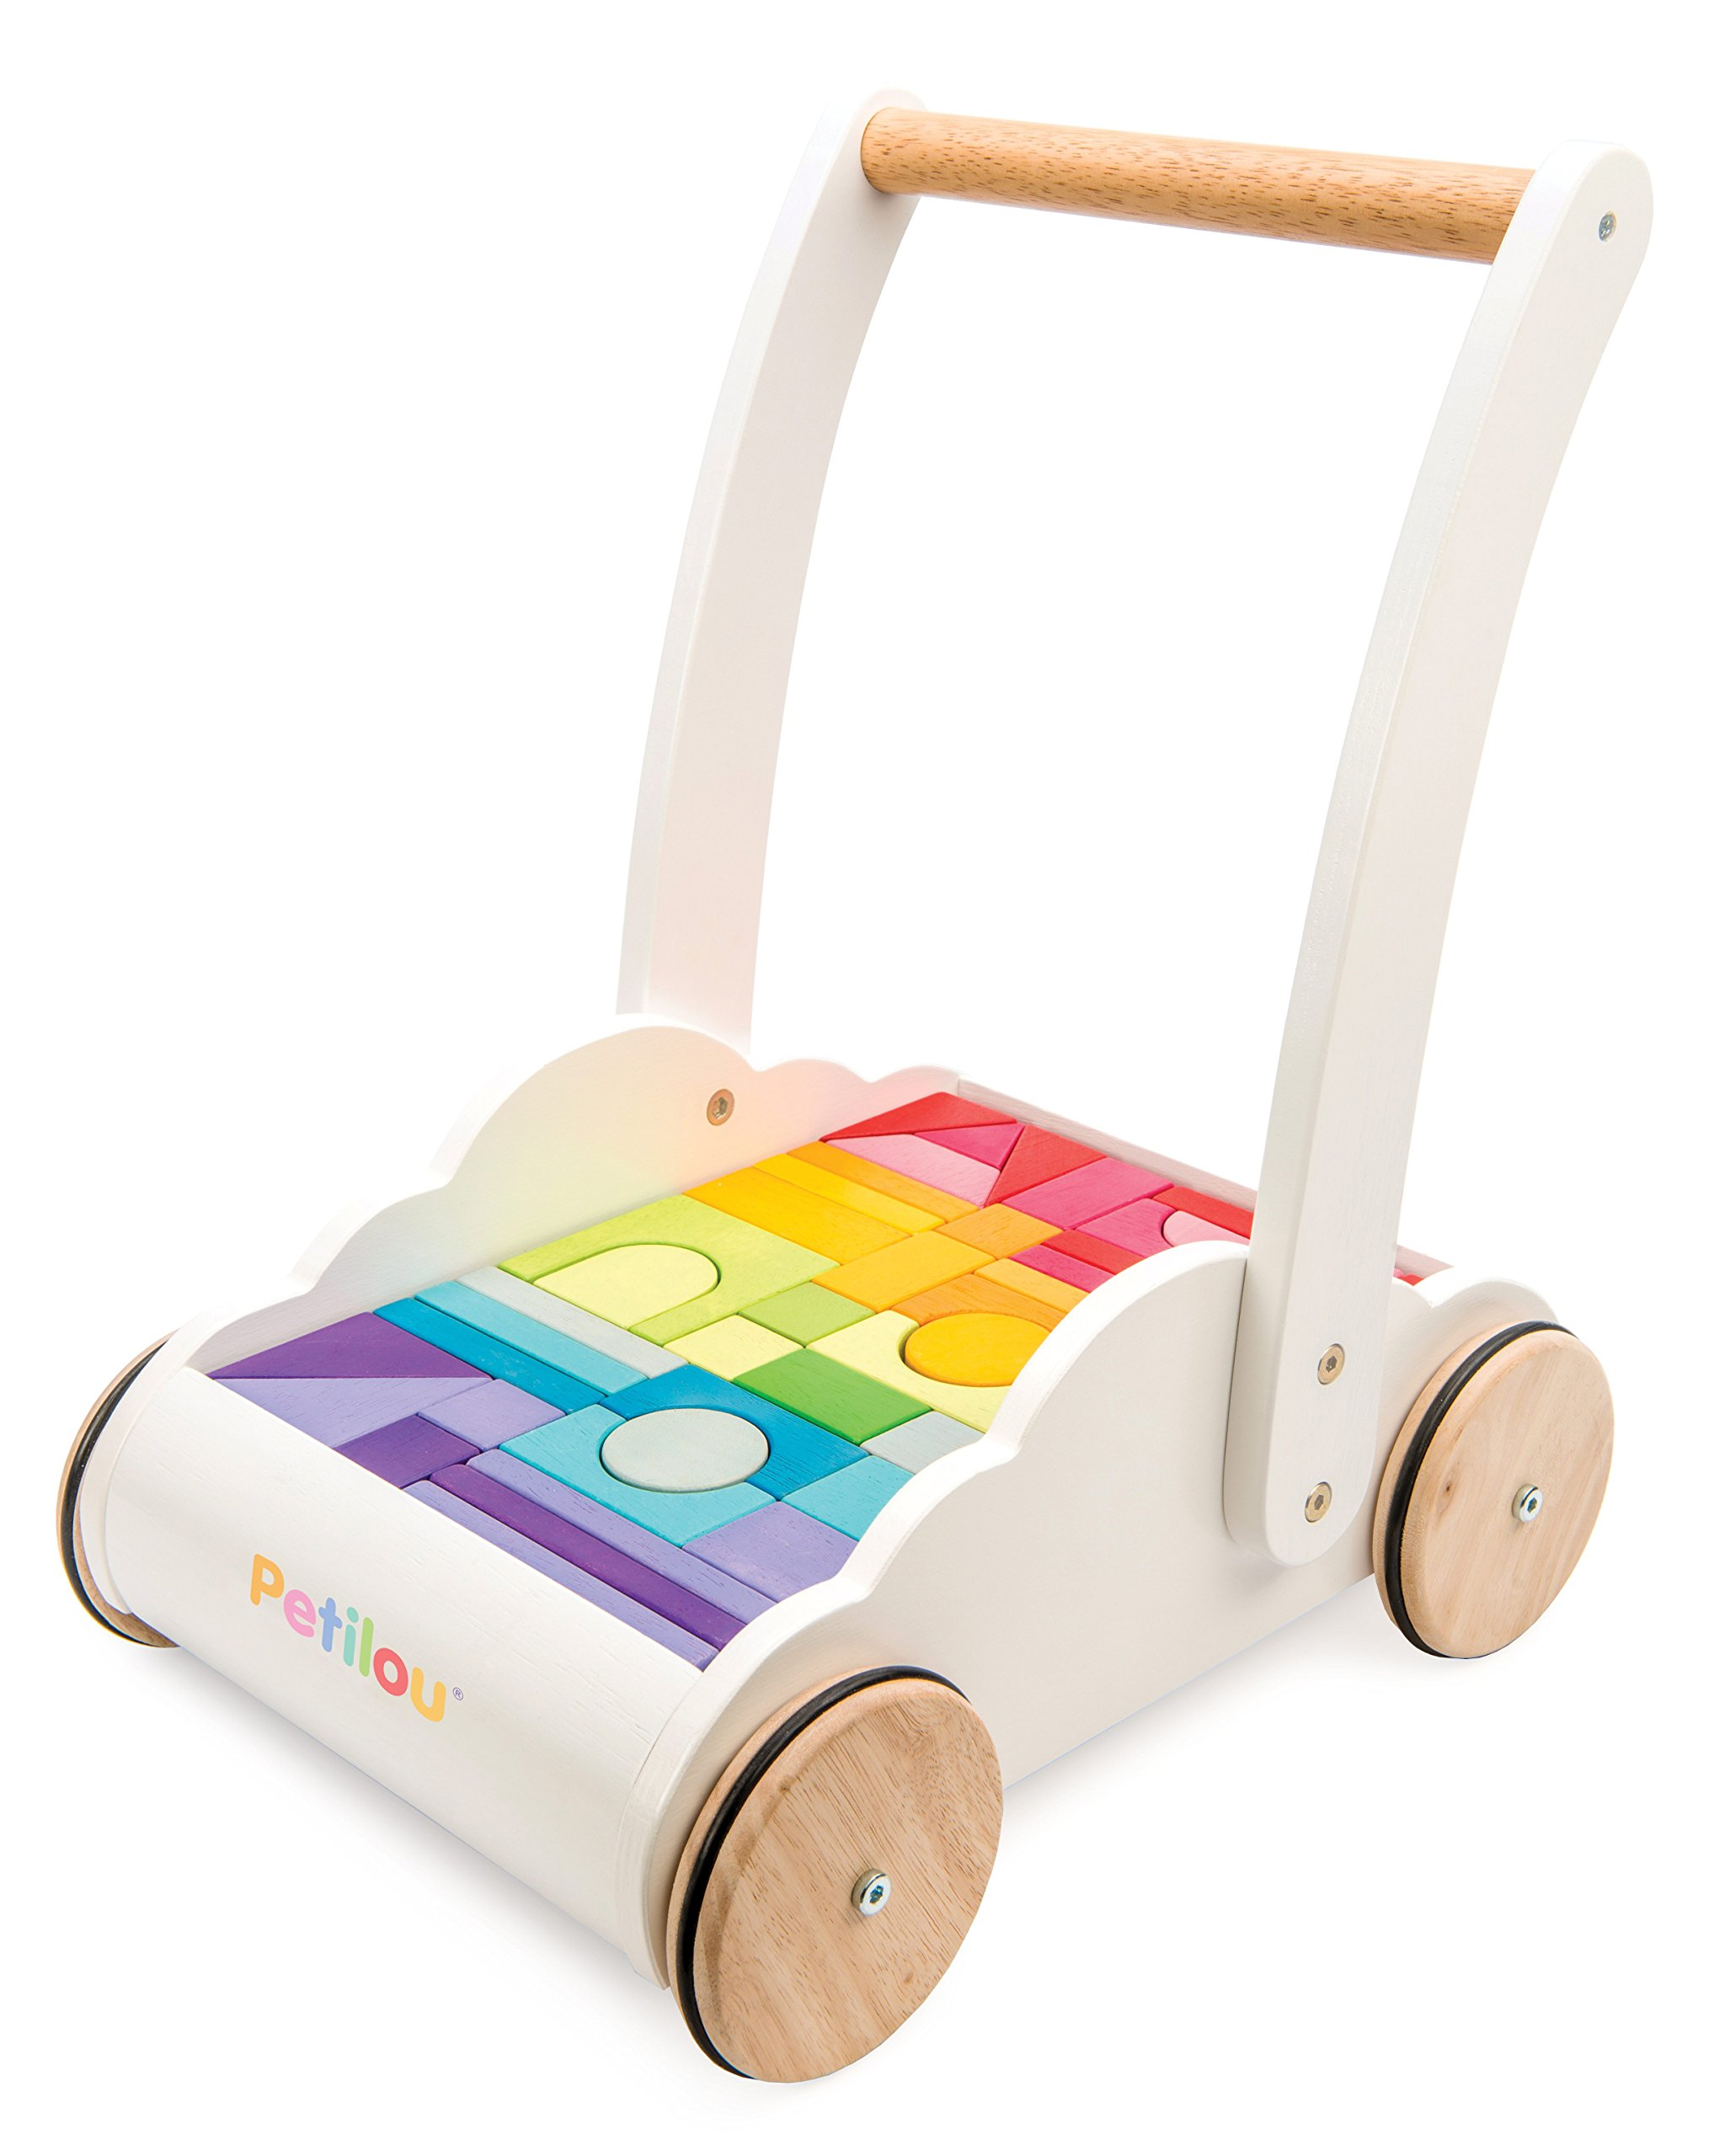 Le Toy Van Petilou Wooden Rainbow Cloud Walker